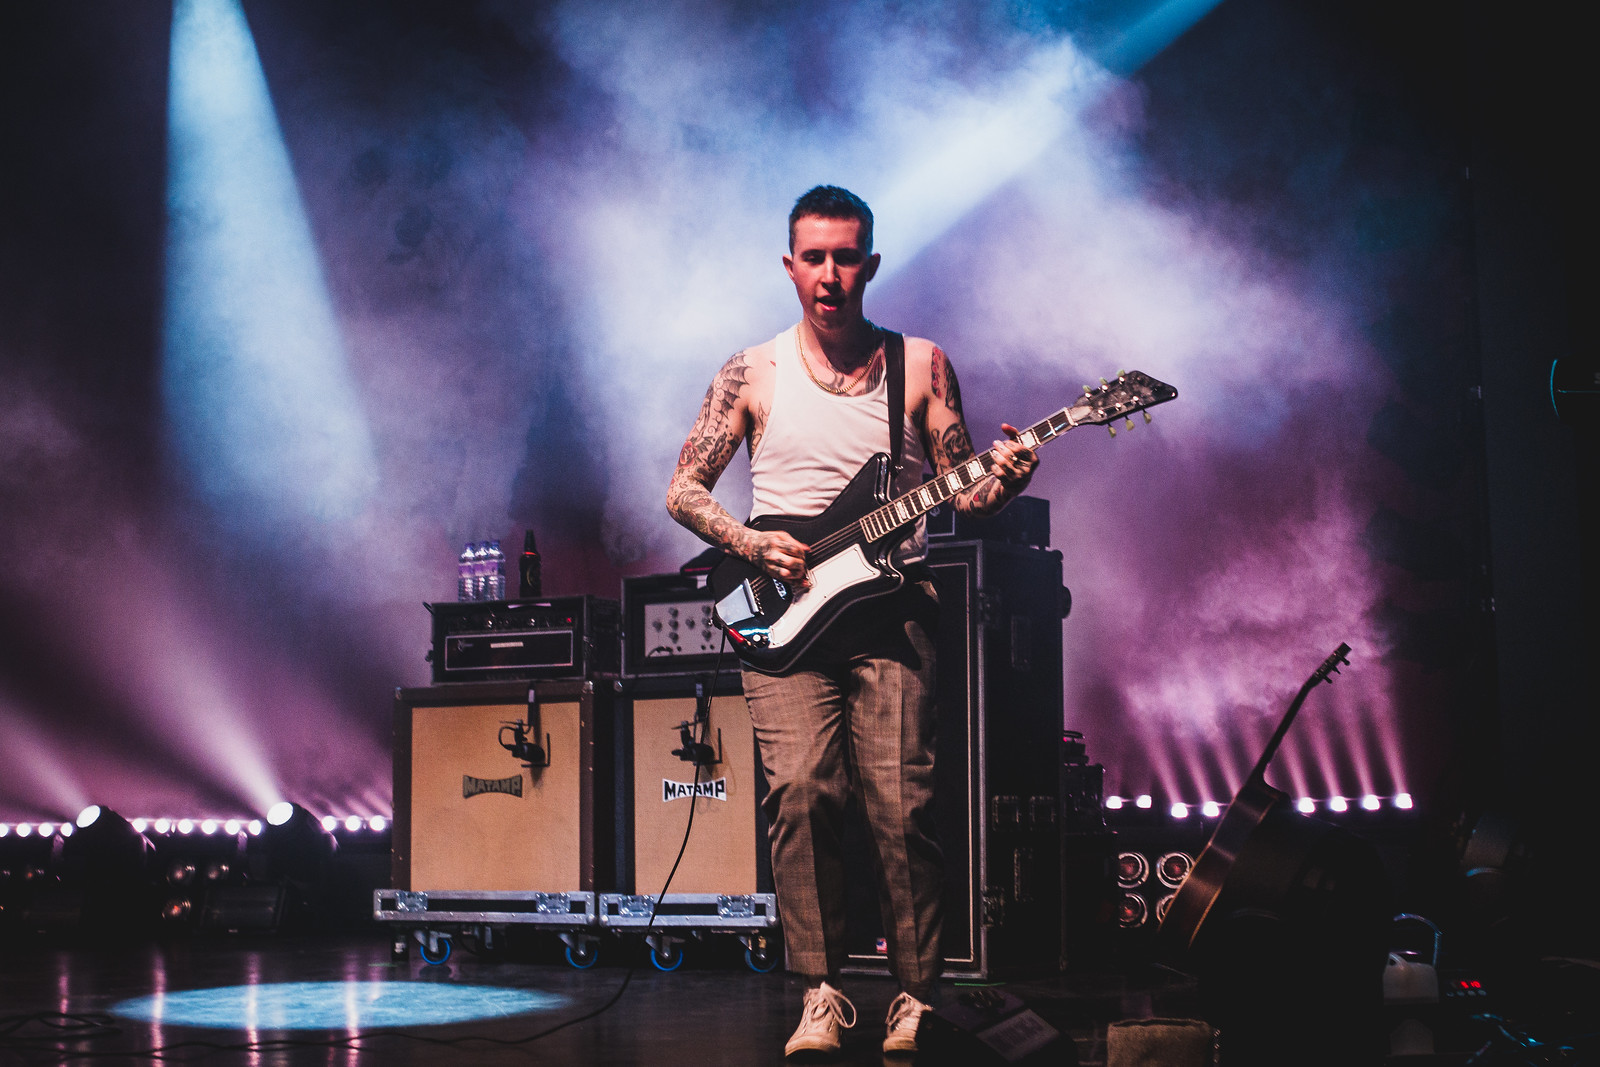 Slaves at the Forum